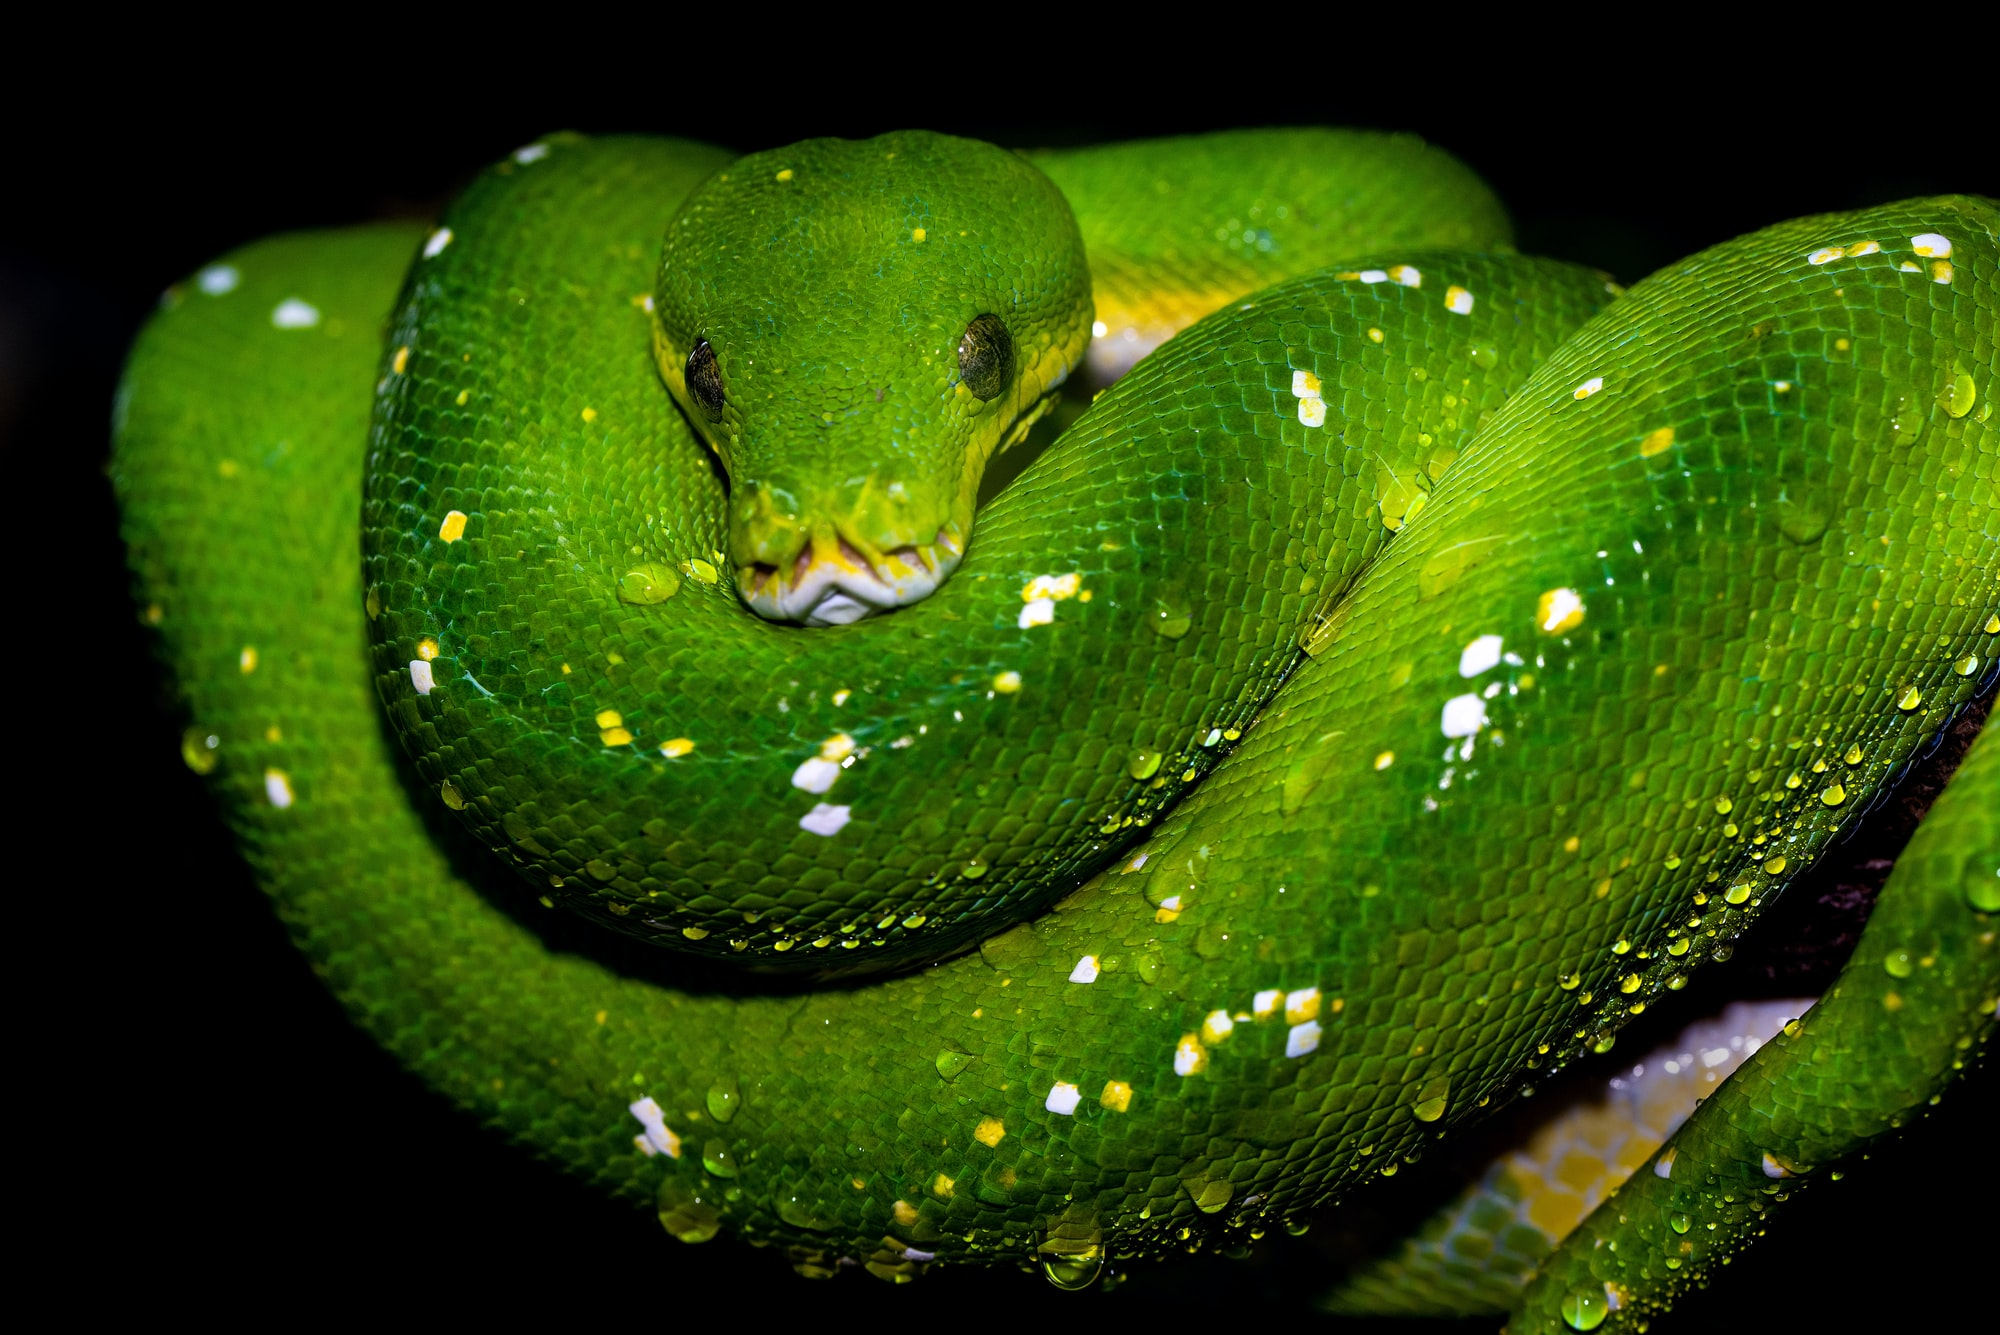 A Green Tree Python in a typical pose, coiled up over a branch.